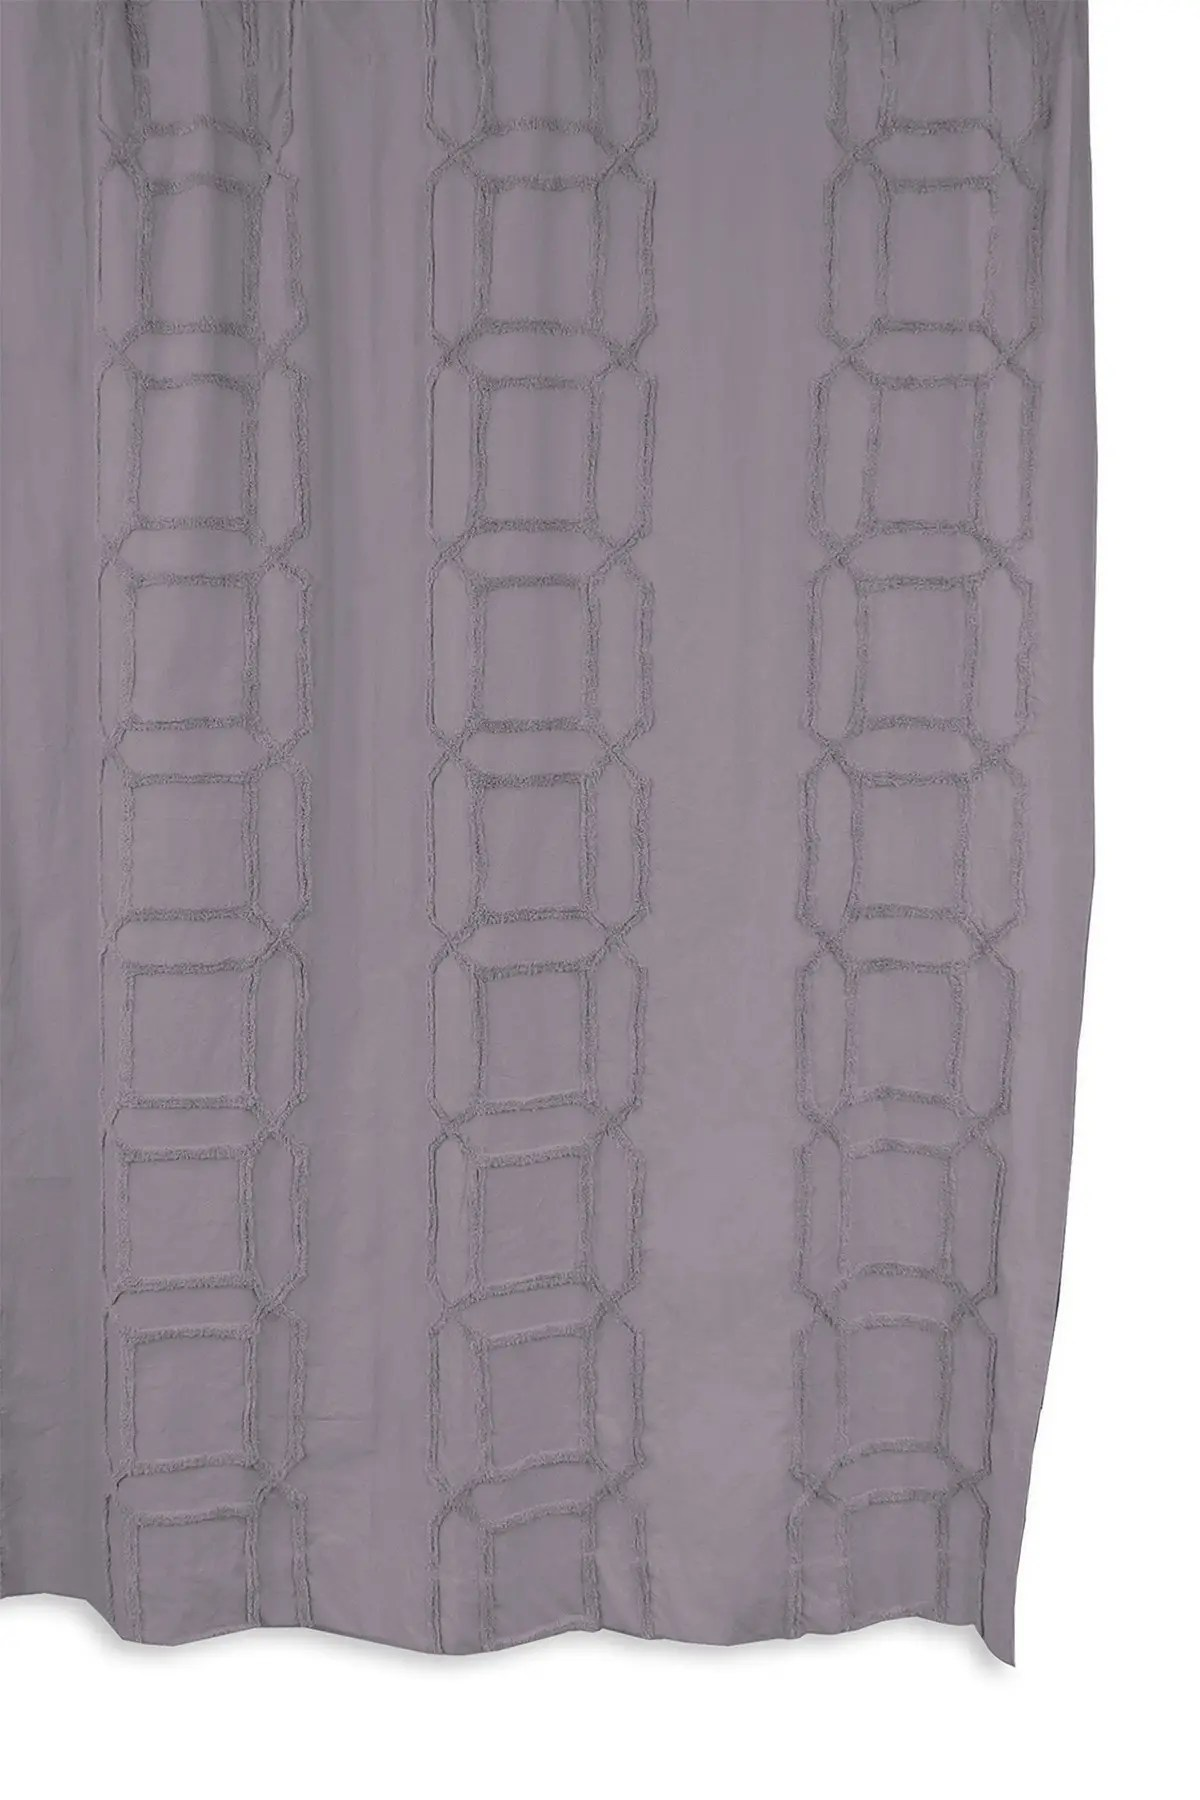 bcbg clip cube tufted shower curtain lilac lilac nordstrom rack